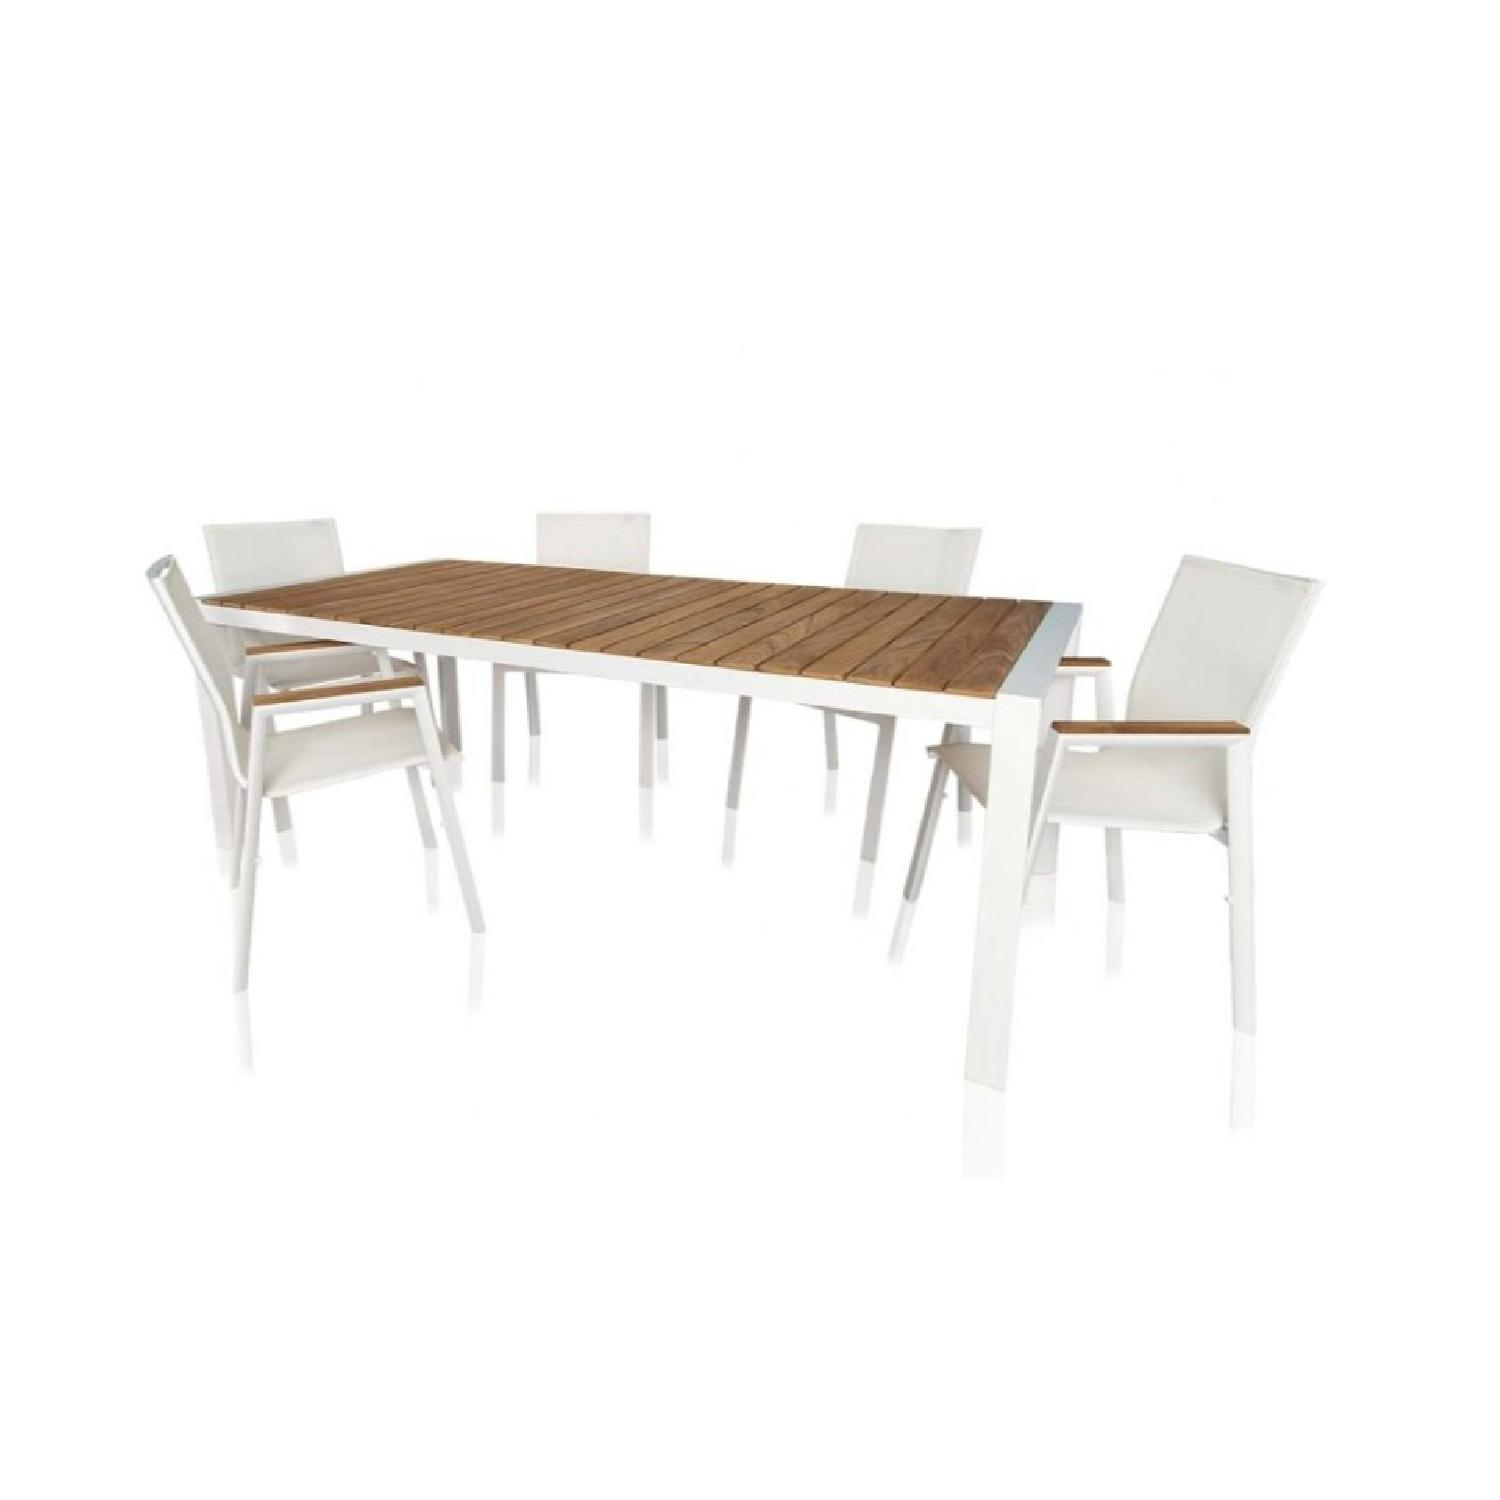 ... Modani Outdoor/Patio Dining Table W/ 6 Chairs 3